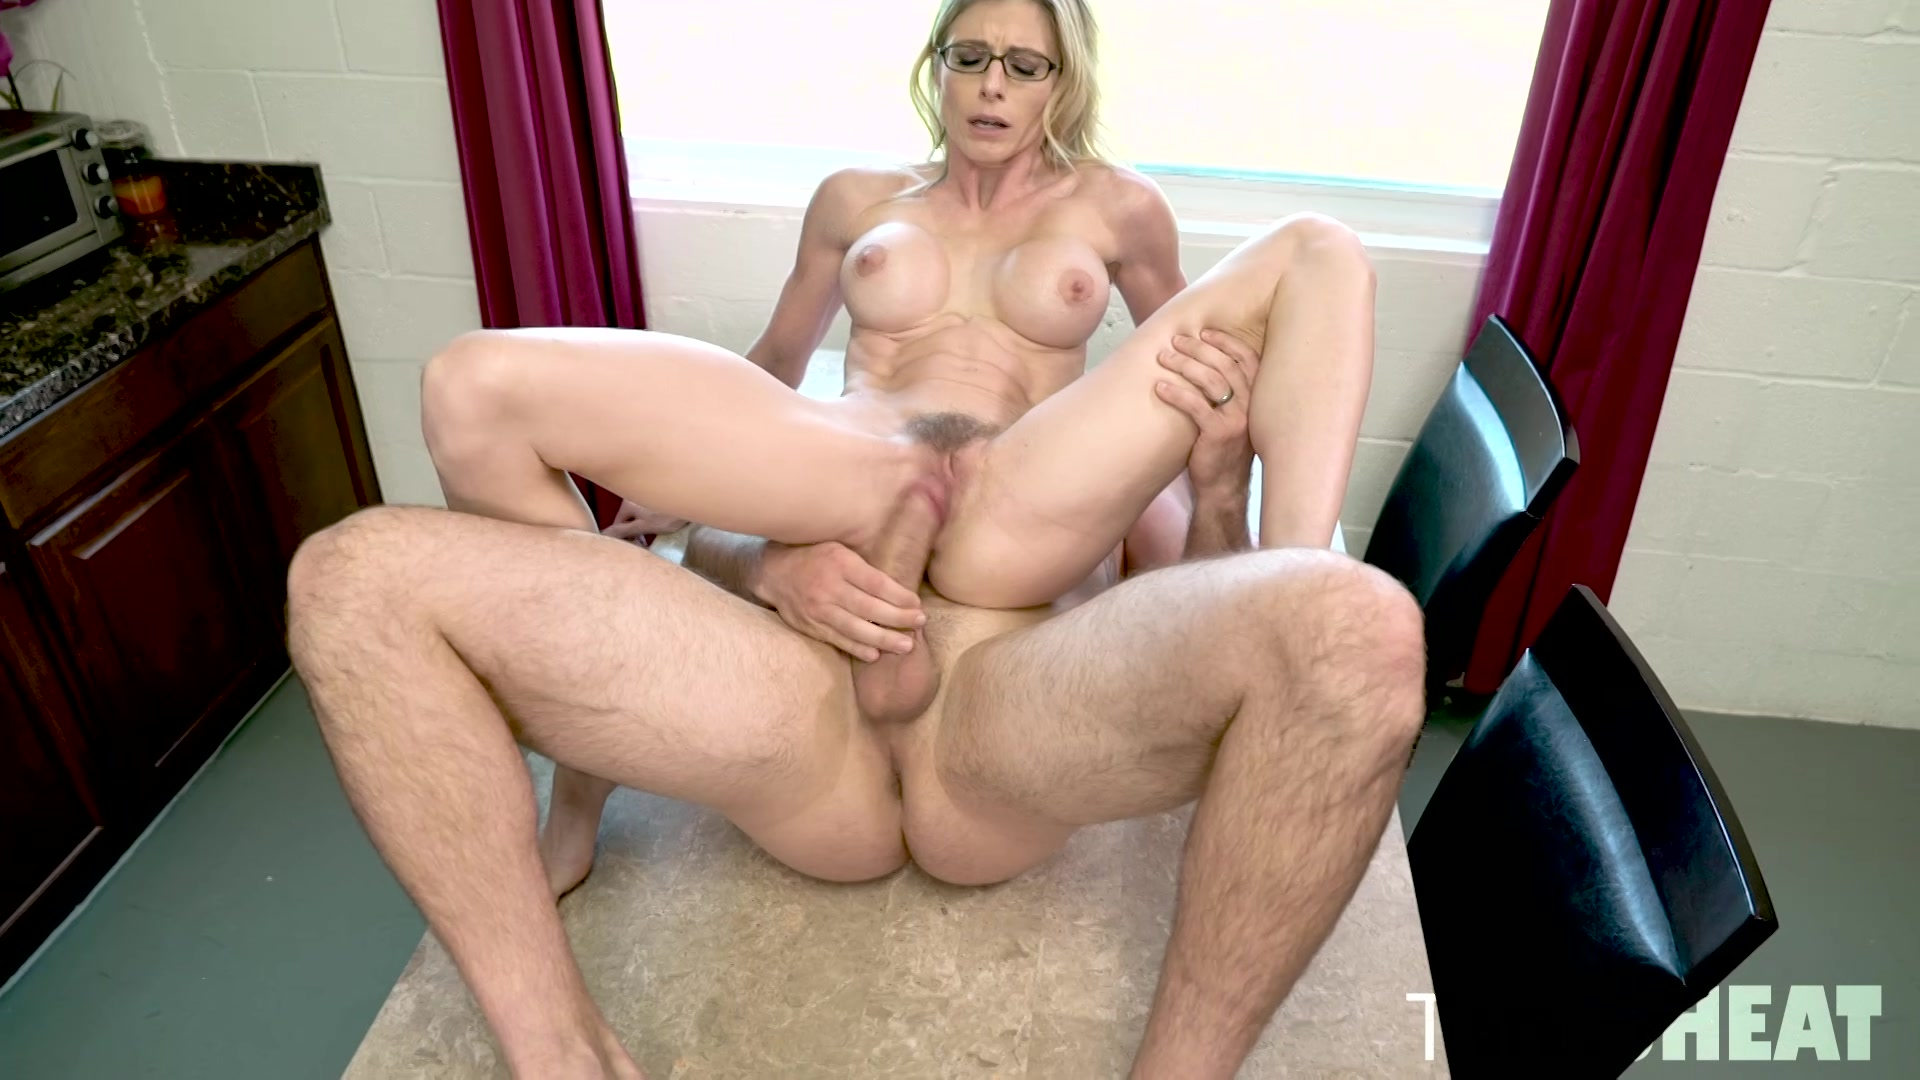 Free Video Preview image 5 from Cory Chase in Family Bonds Forever